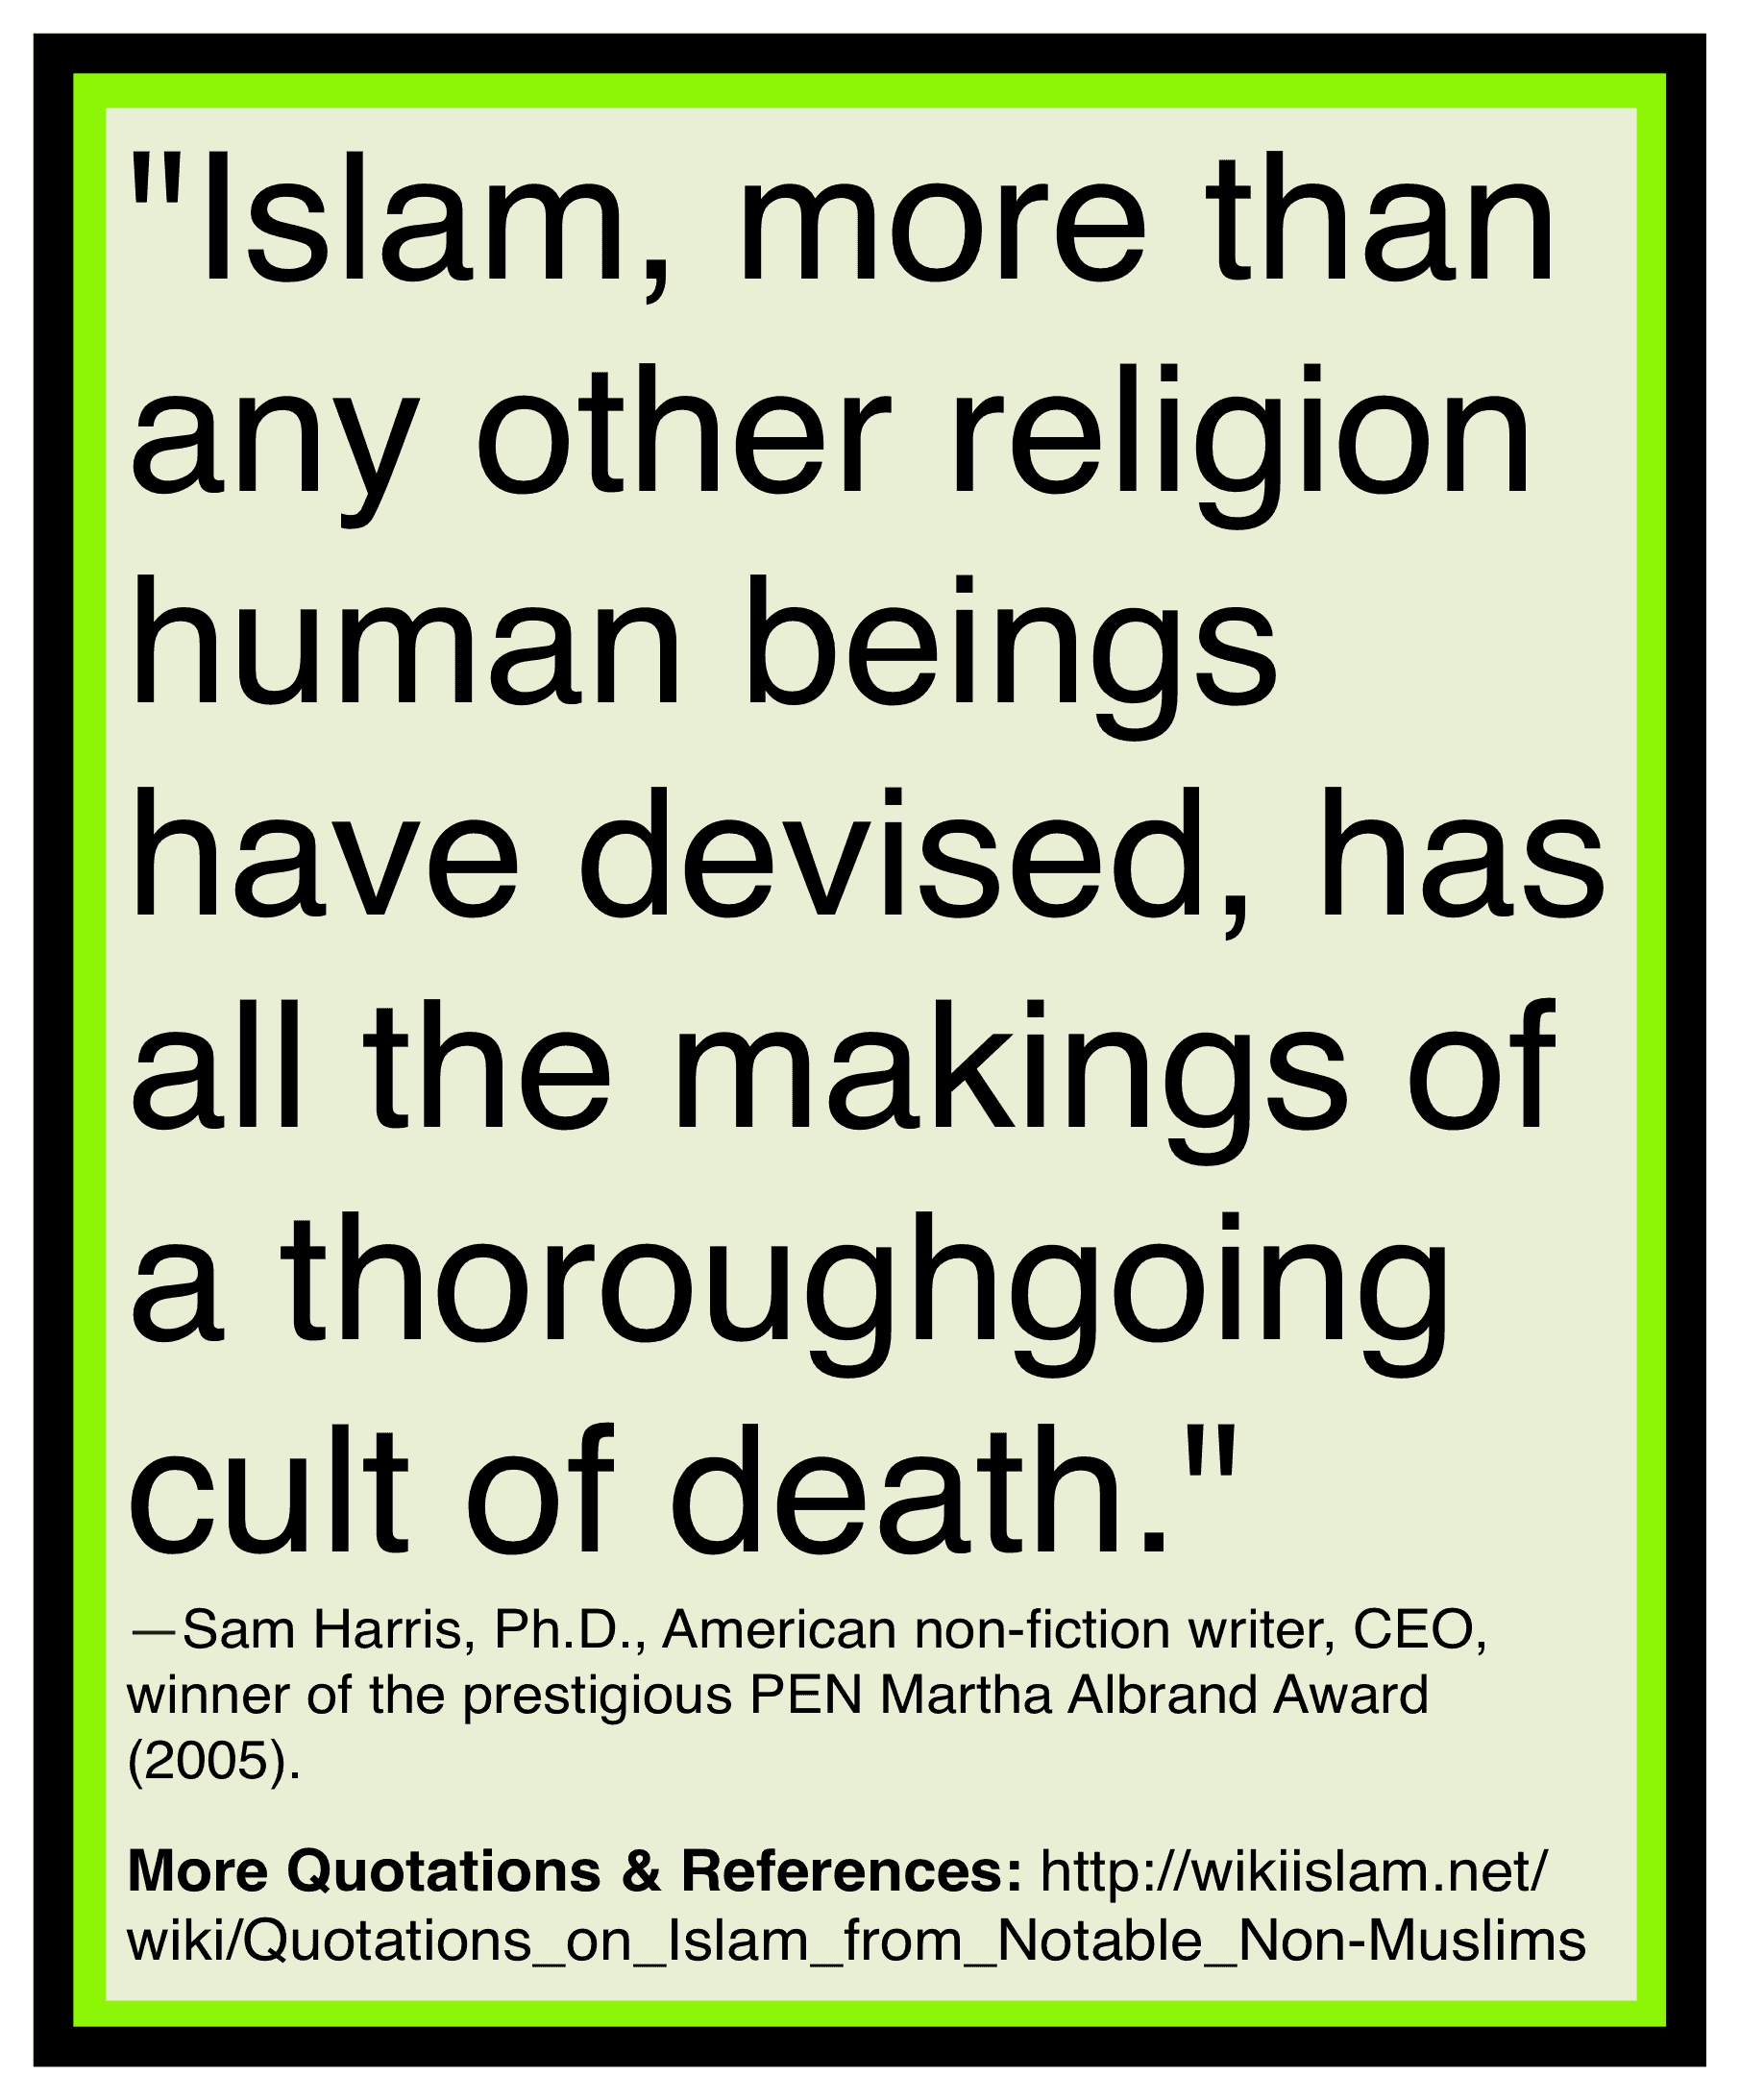 Islam is a death cult